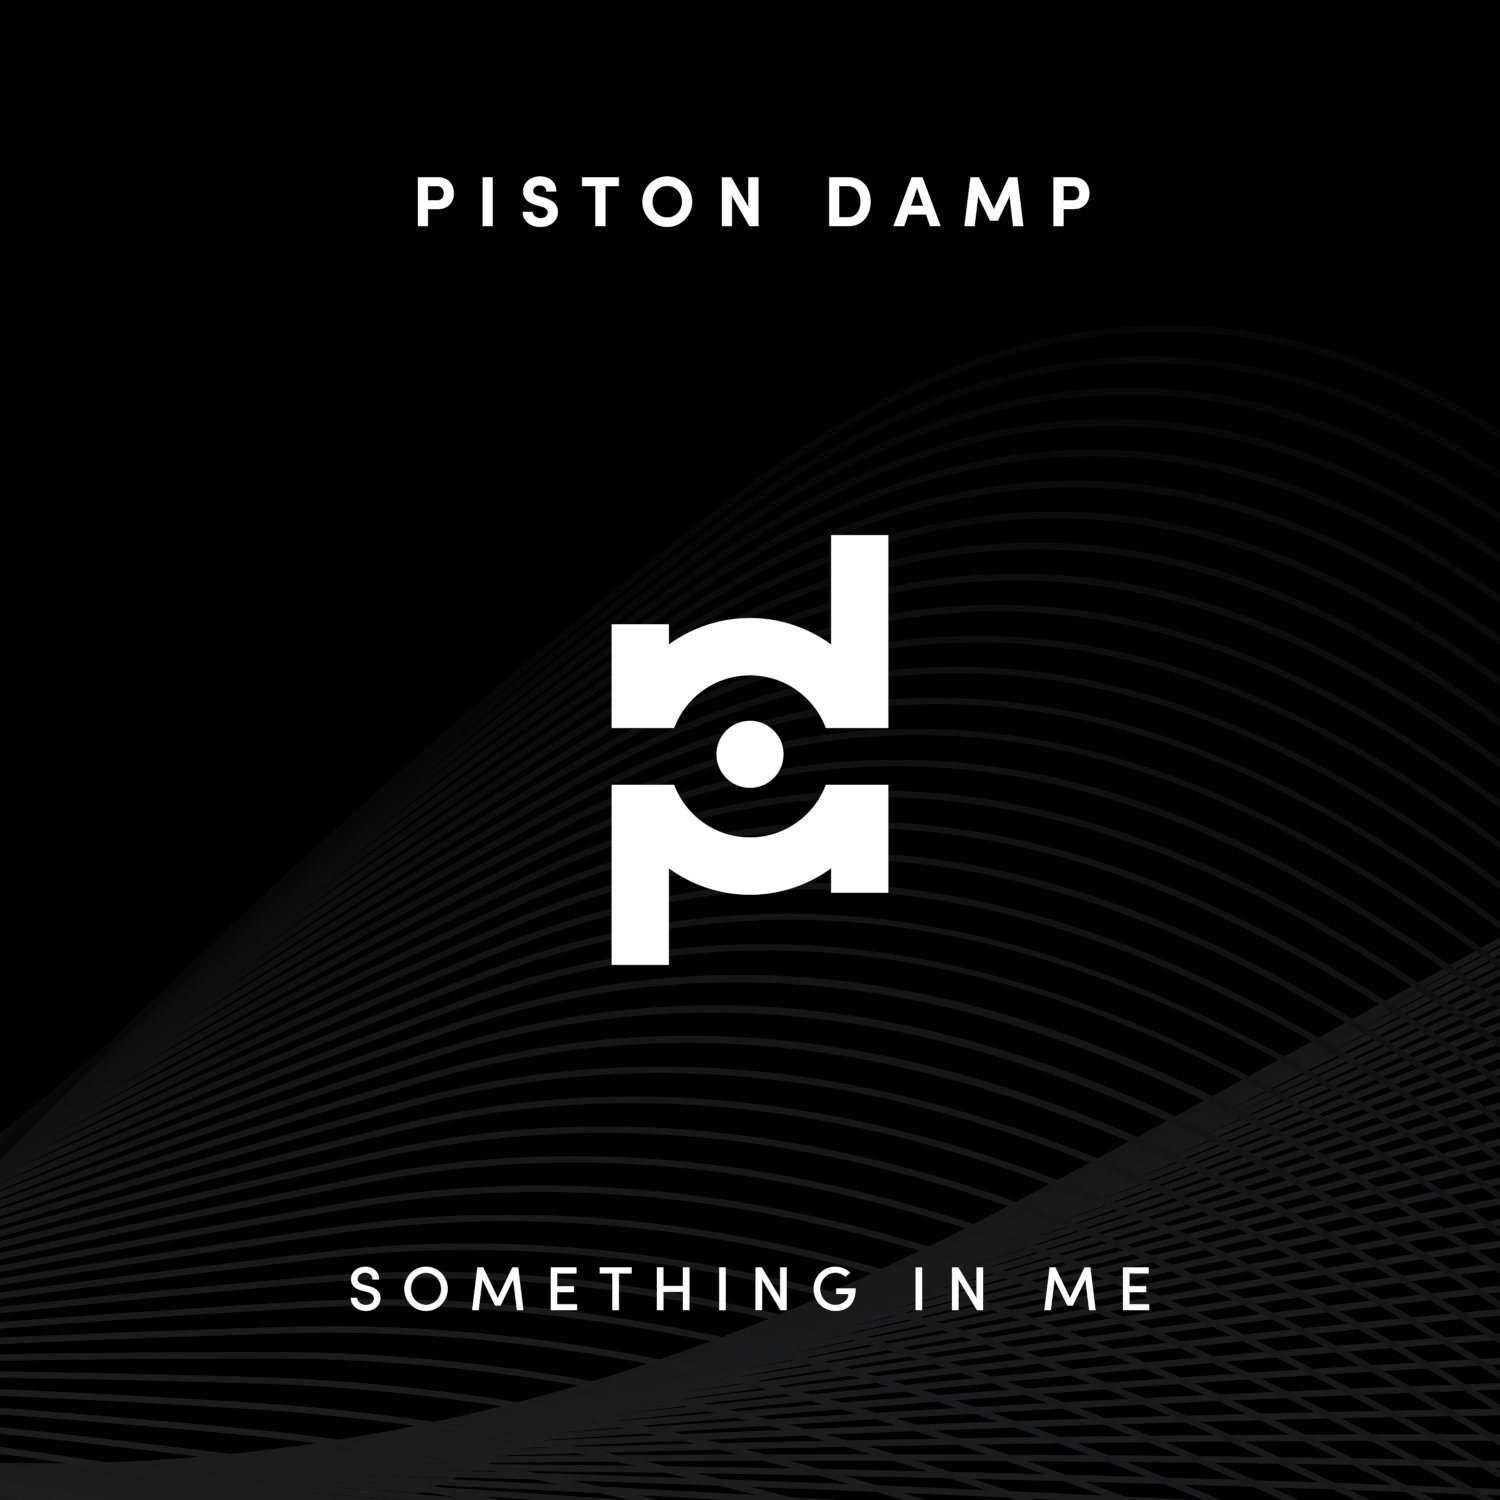 piston damp cover